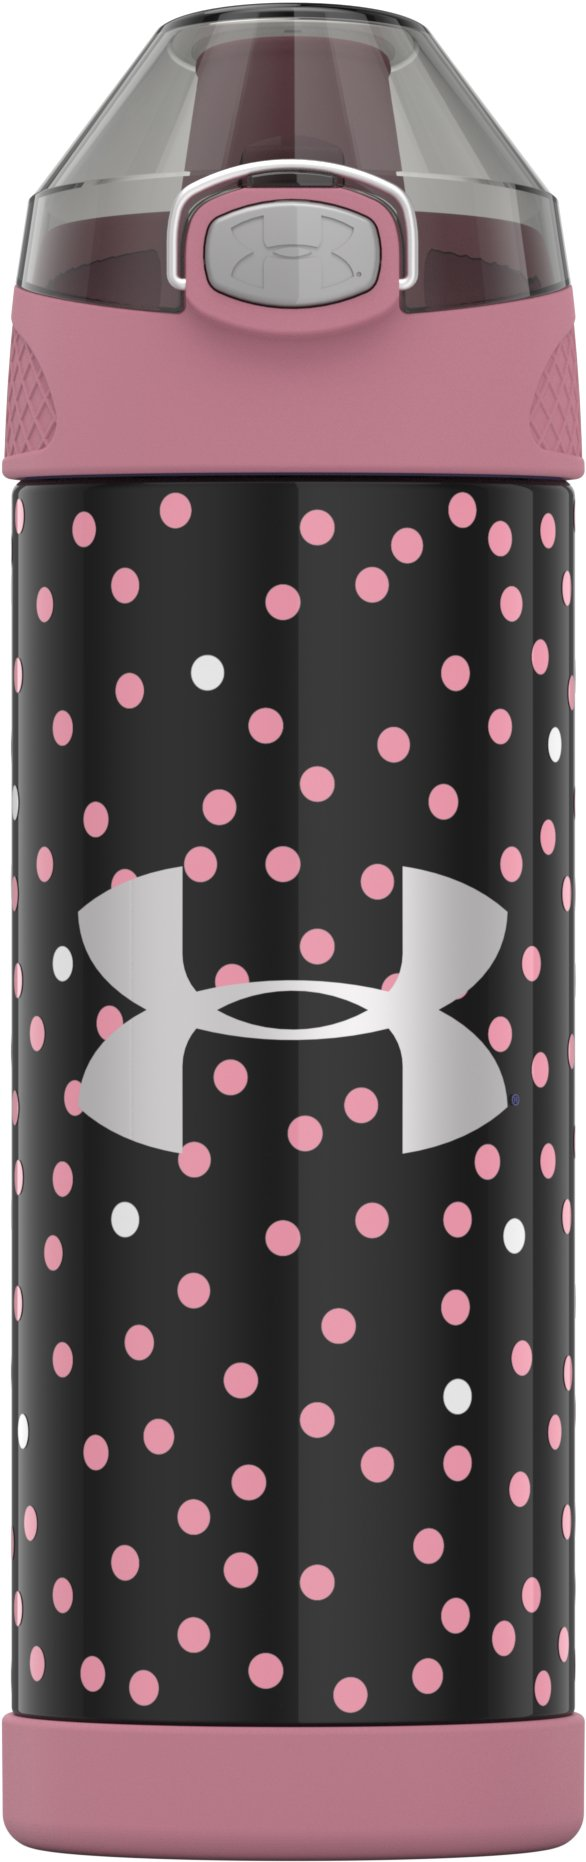 Beyond 16 oz. Vacuum Insulated Stainless Steel Water Bottle, Pink,